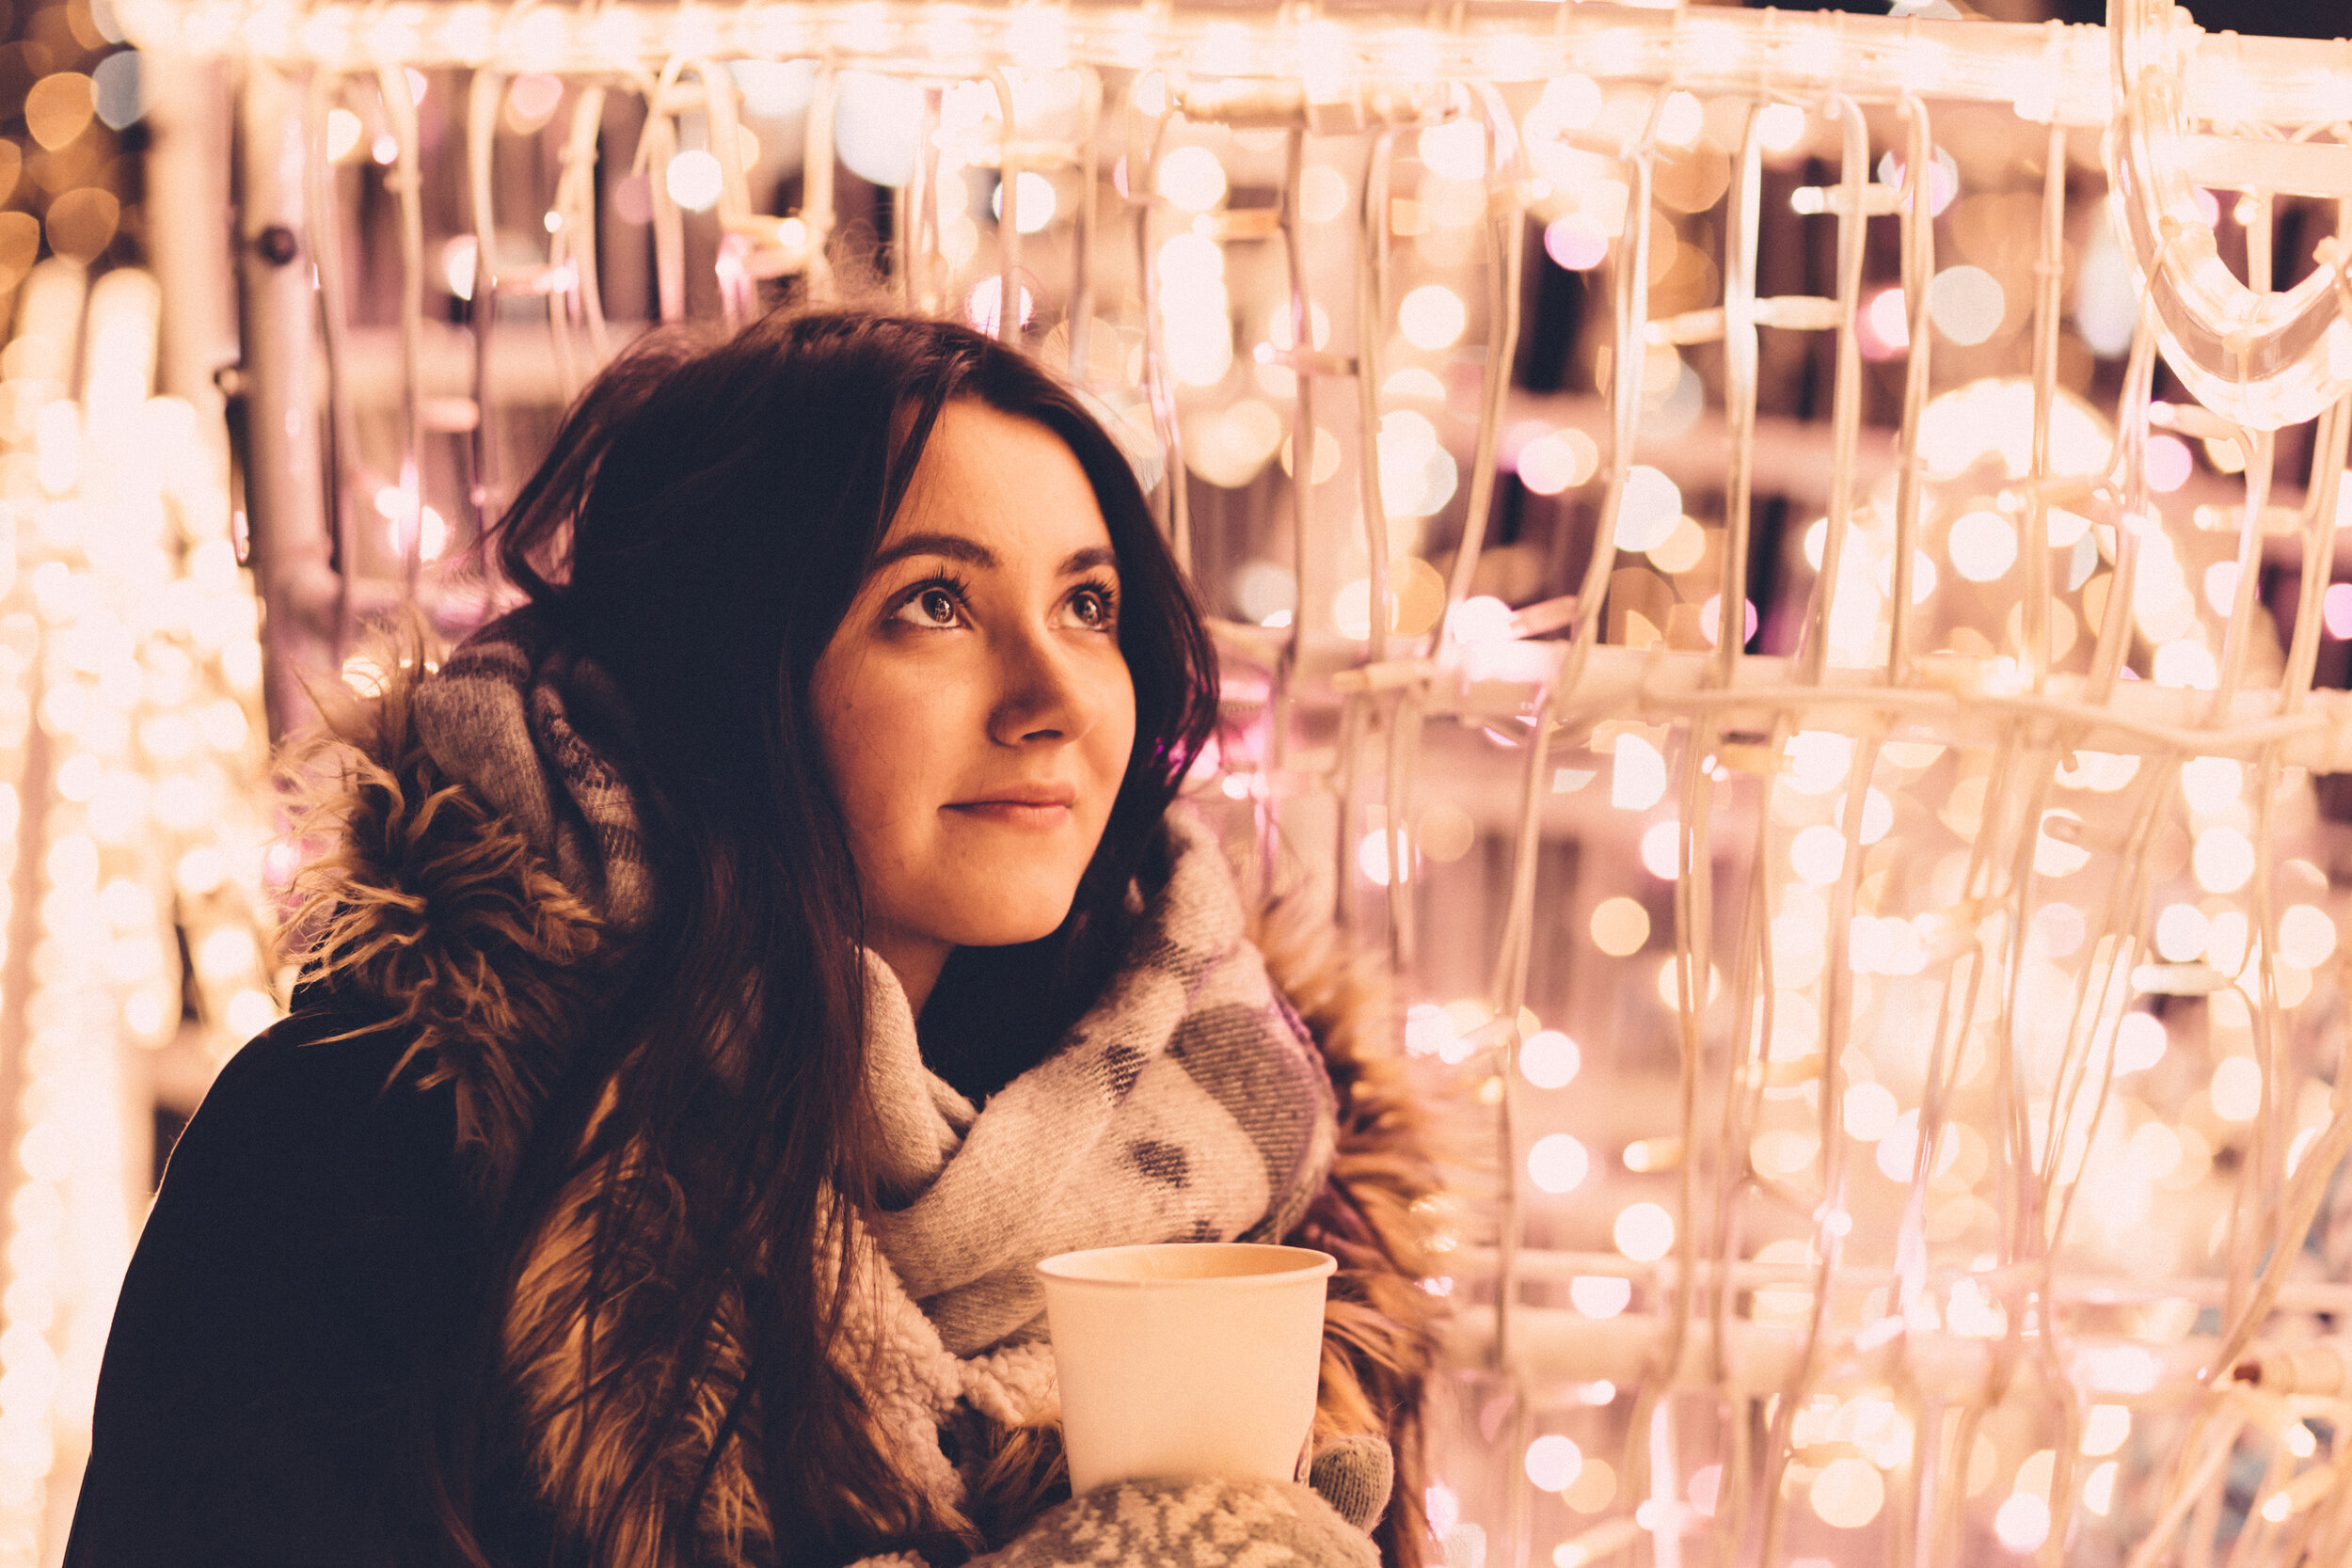 christmas_lights_and_girl_holding_coffee.jpg